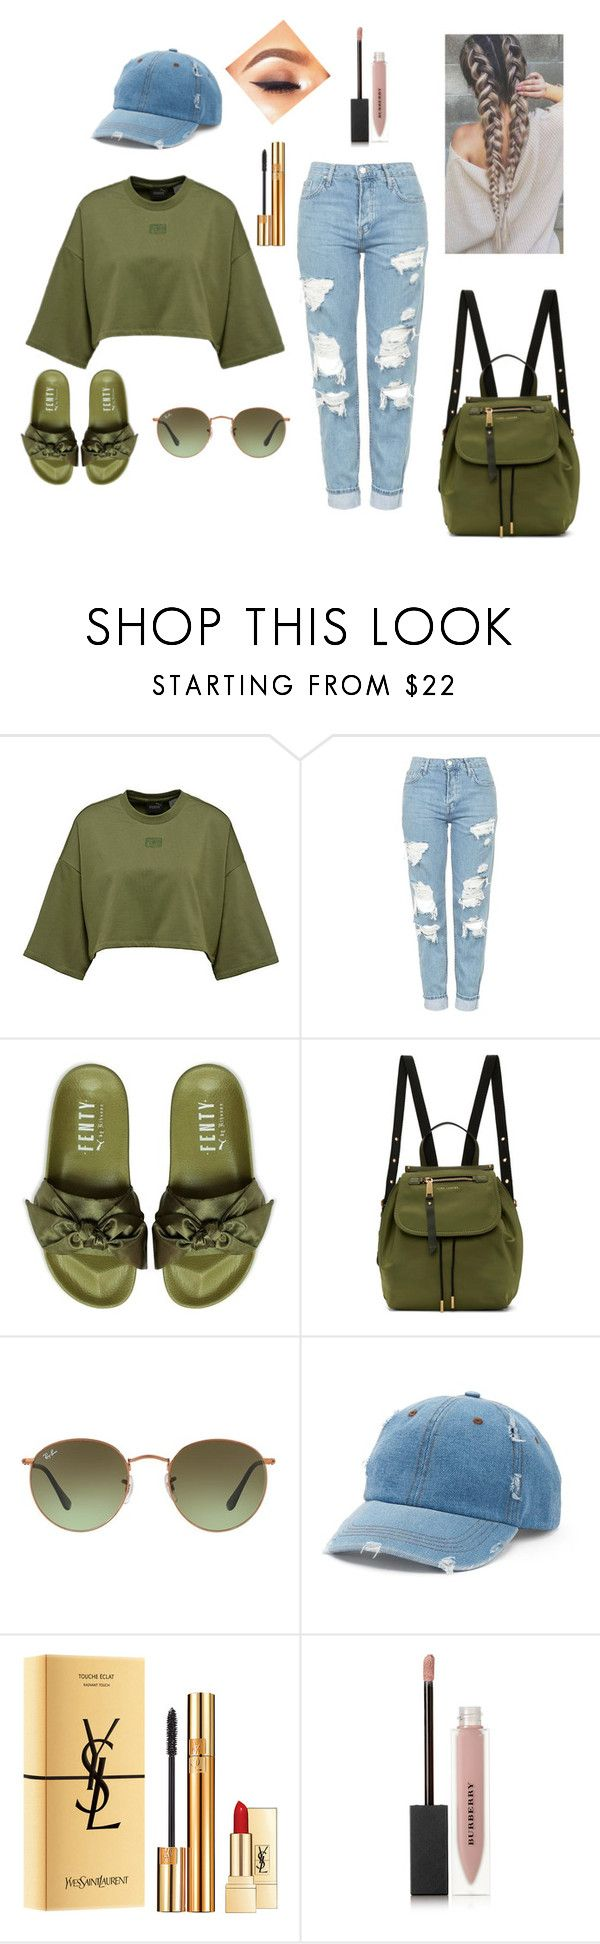 """""""School outfit #6"""" by spongeboblov ❤ liked on Polyvore featuring Topshop, Puma, Marc Jacobs, Ray-Ban, Mudd, Yves Saint Laurent and Burberry"""